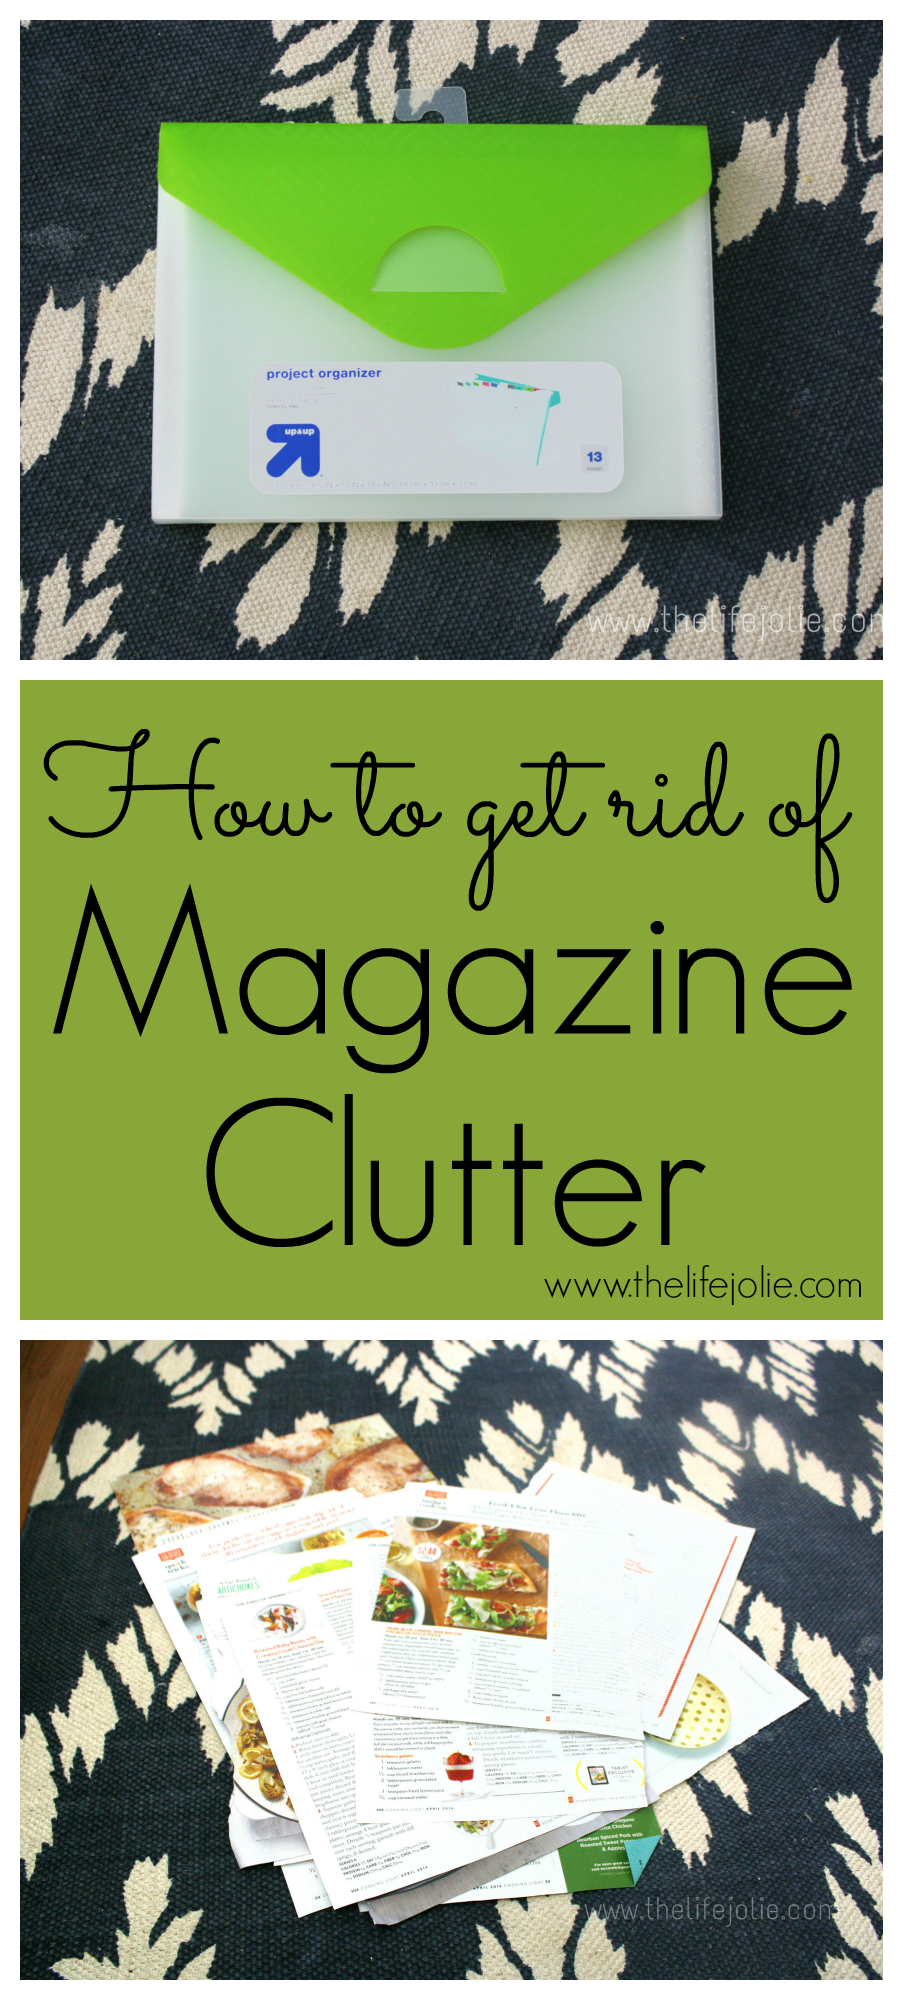 Here is a great idea about how to get rid of magazine clutter without sacrificing the articles you want to save. Click on the photo to read more...